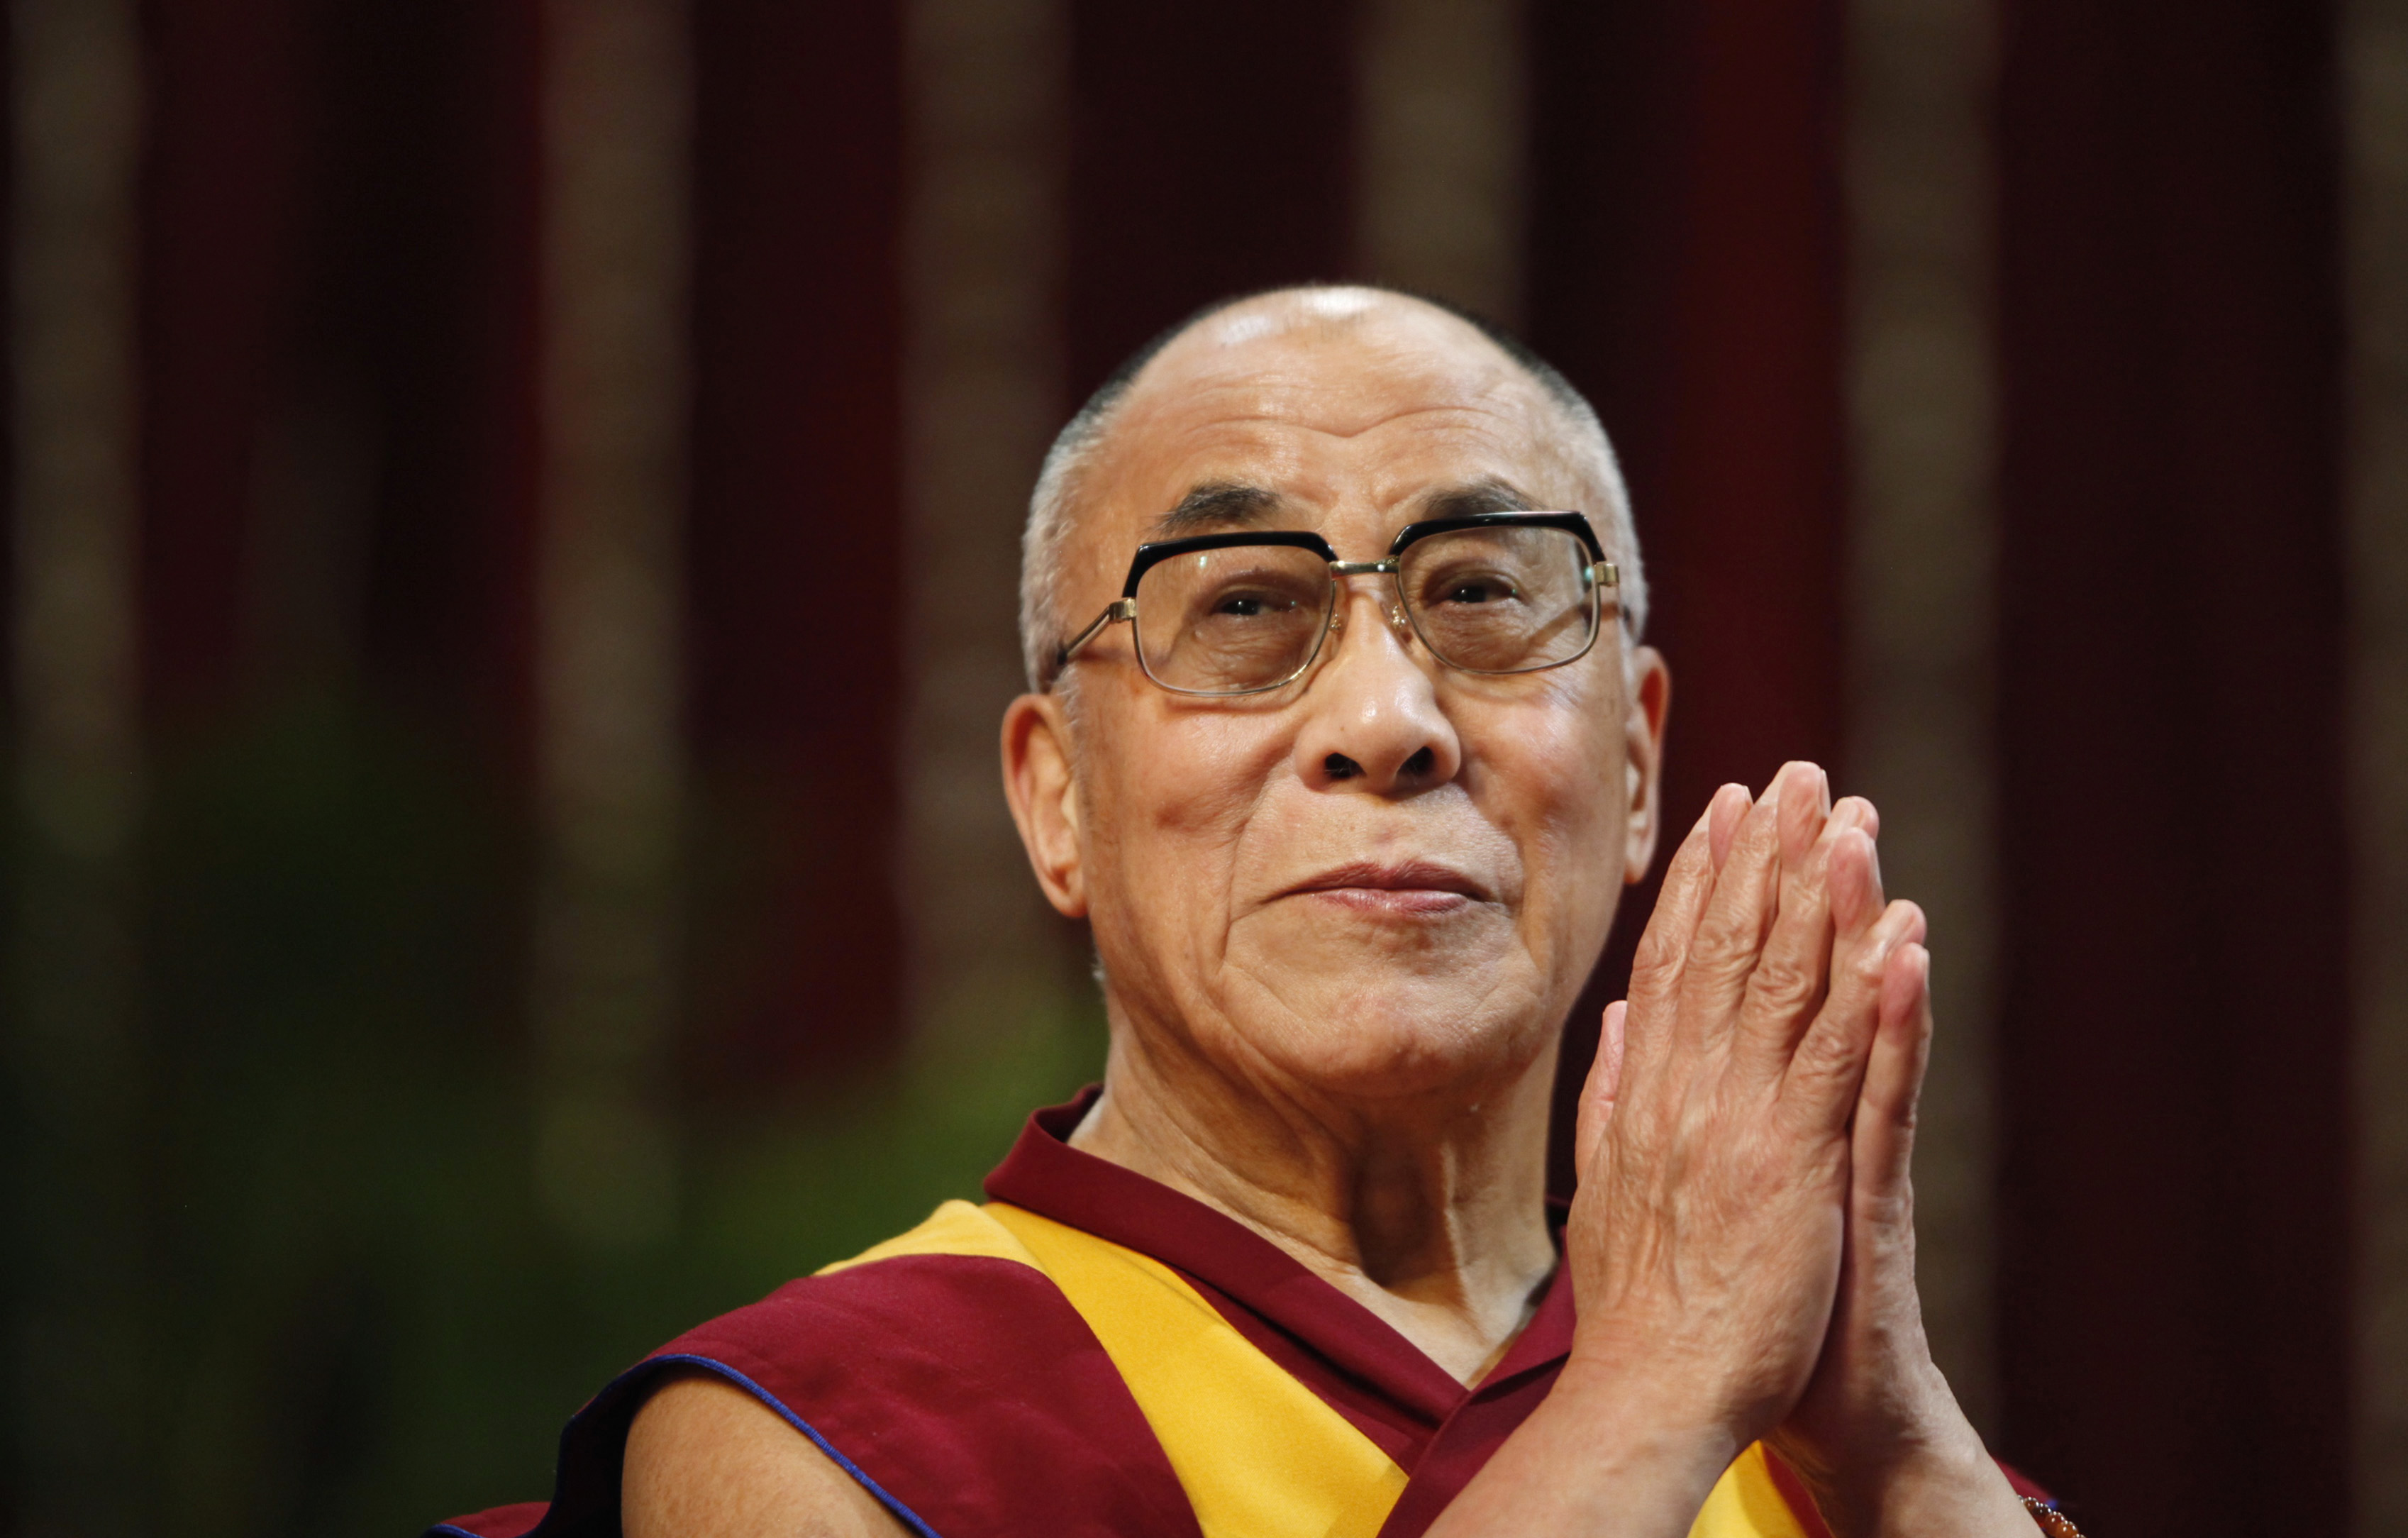 The Dalai Lama gestures before speaking to students during a talk at Mumbai University February 18, 2011. (Photo Courtesy: REUTERS)